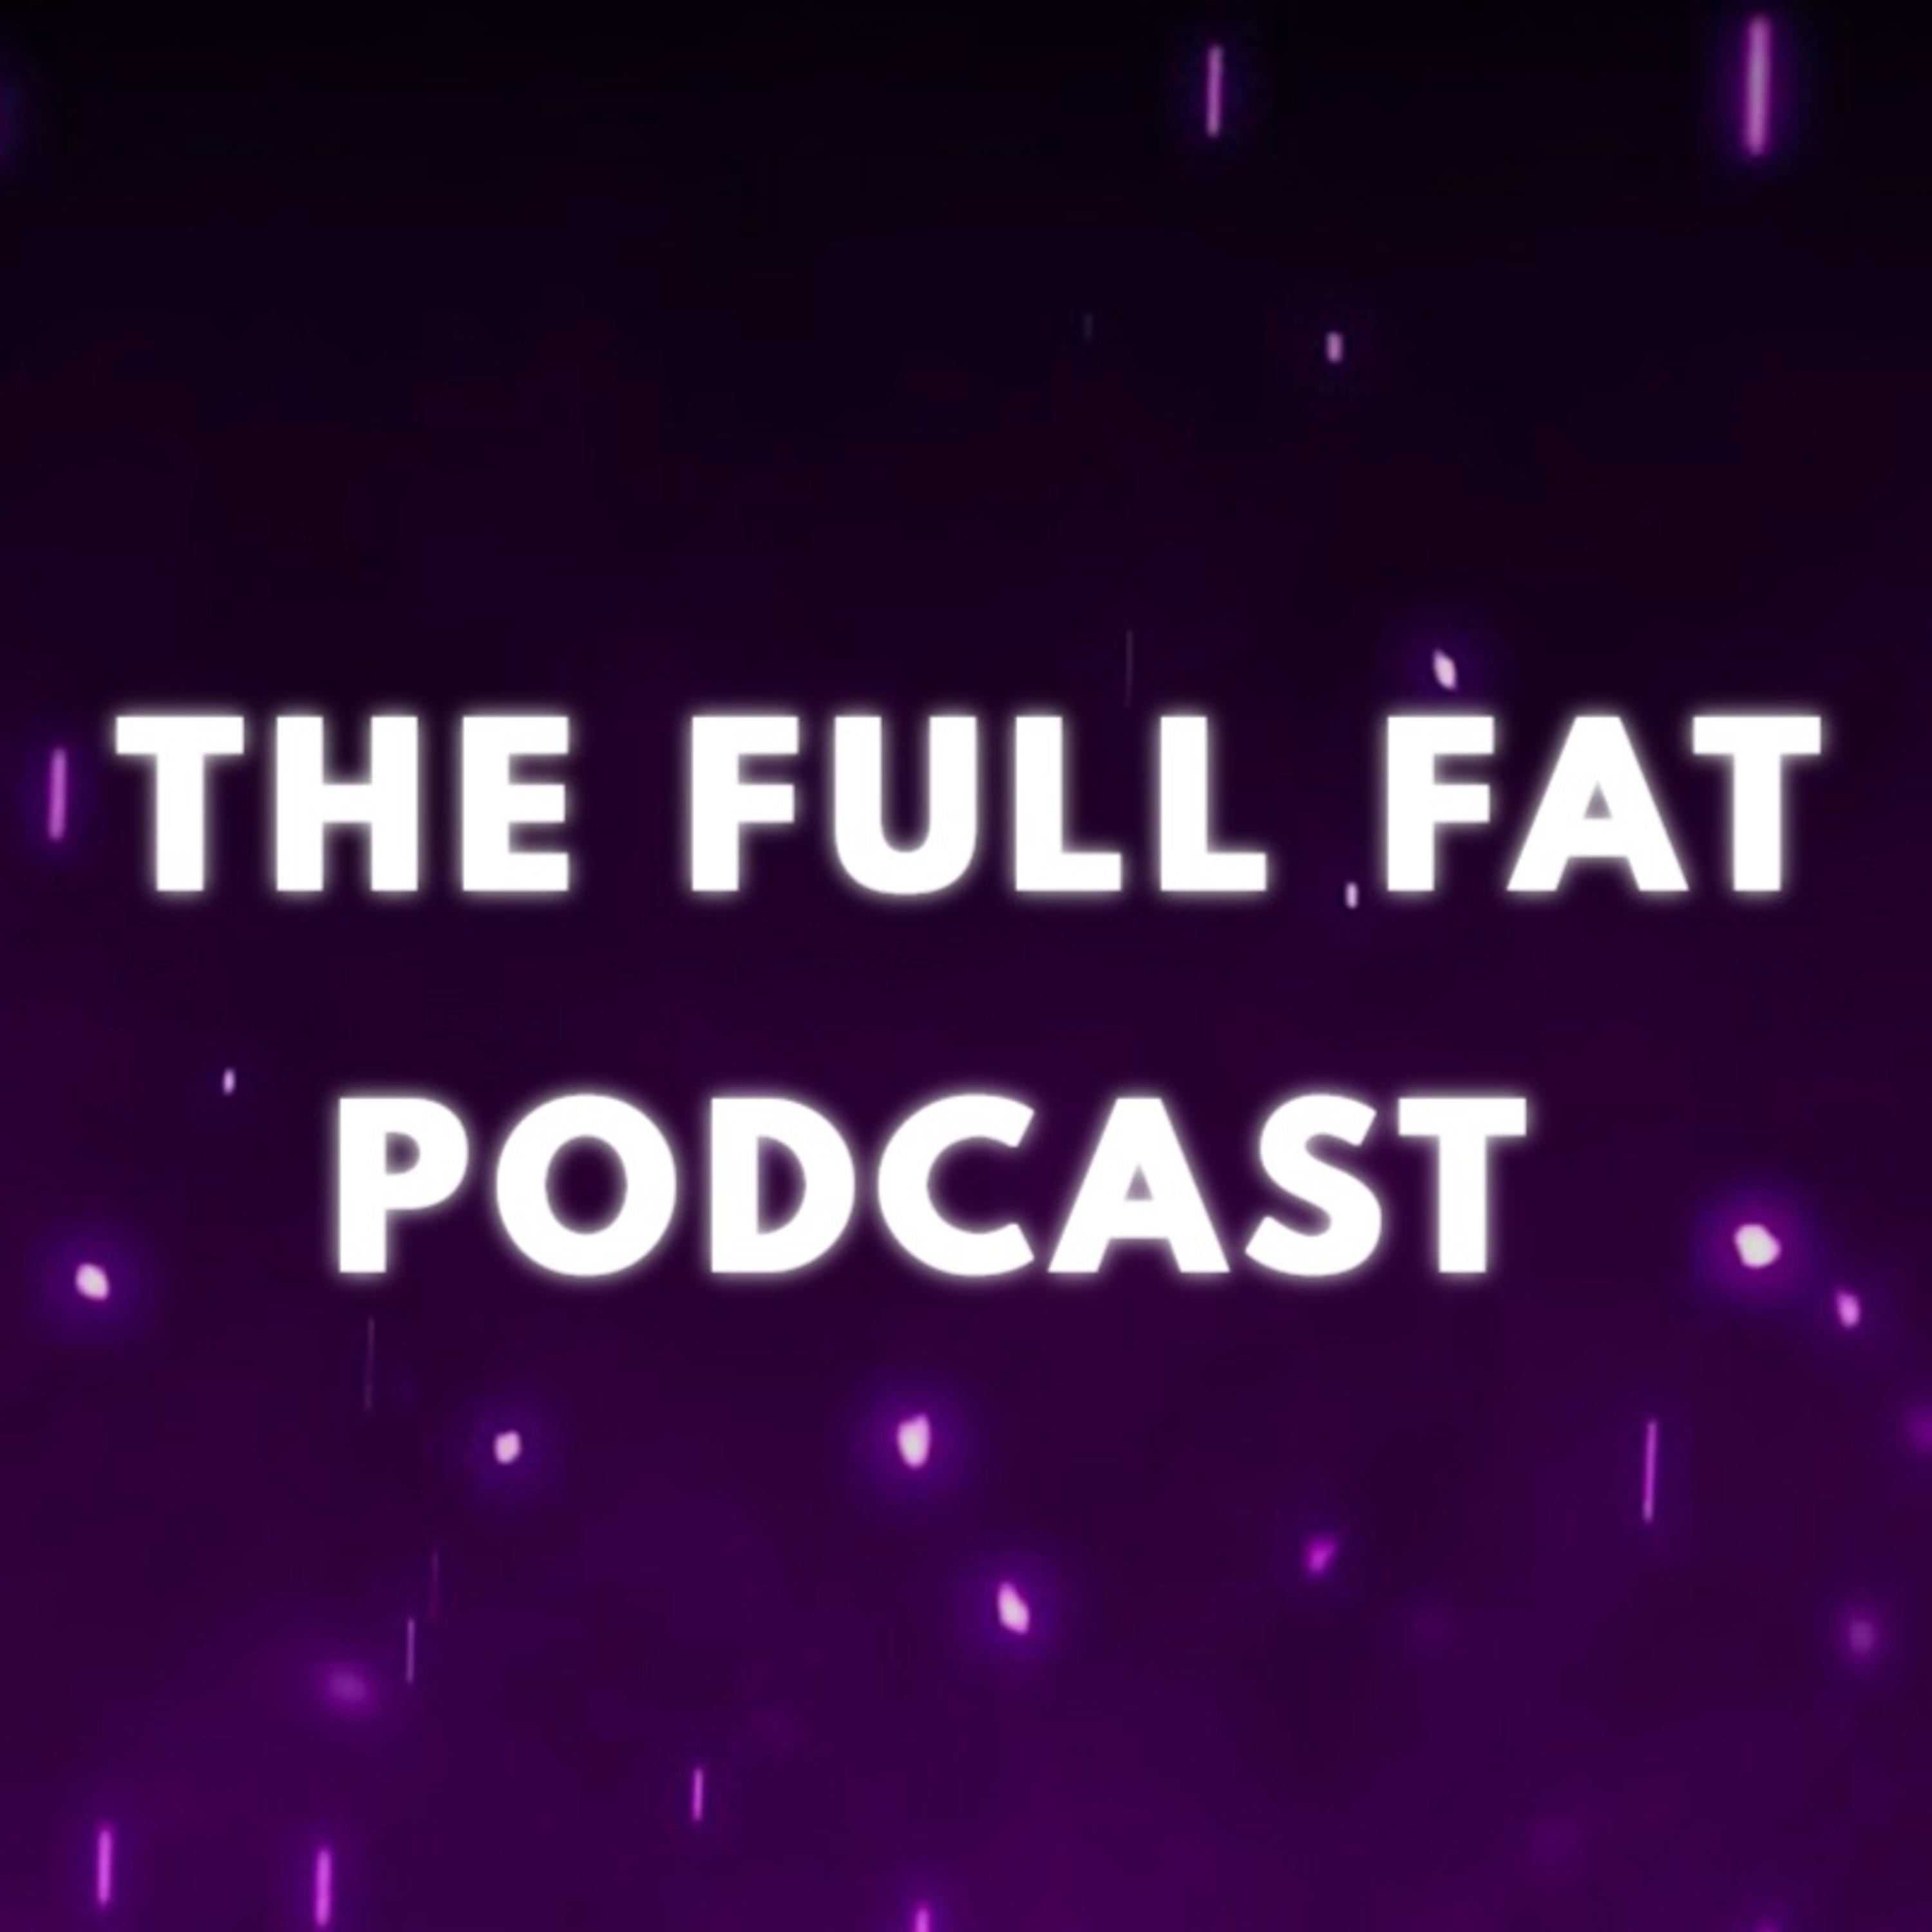 The Full Fat Podcast | Can You Hear Me?, The Oscars 2020, Moonlight